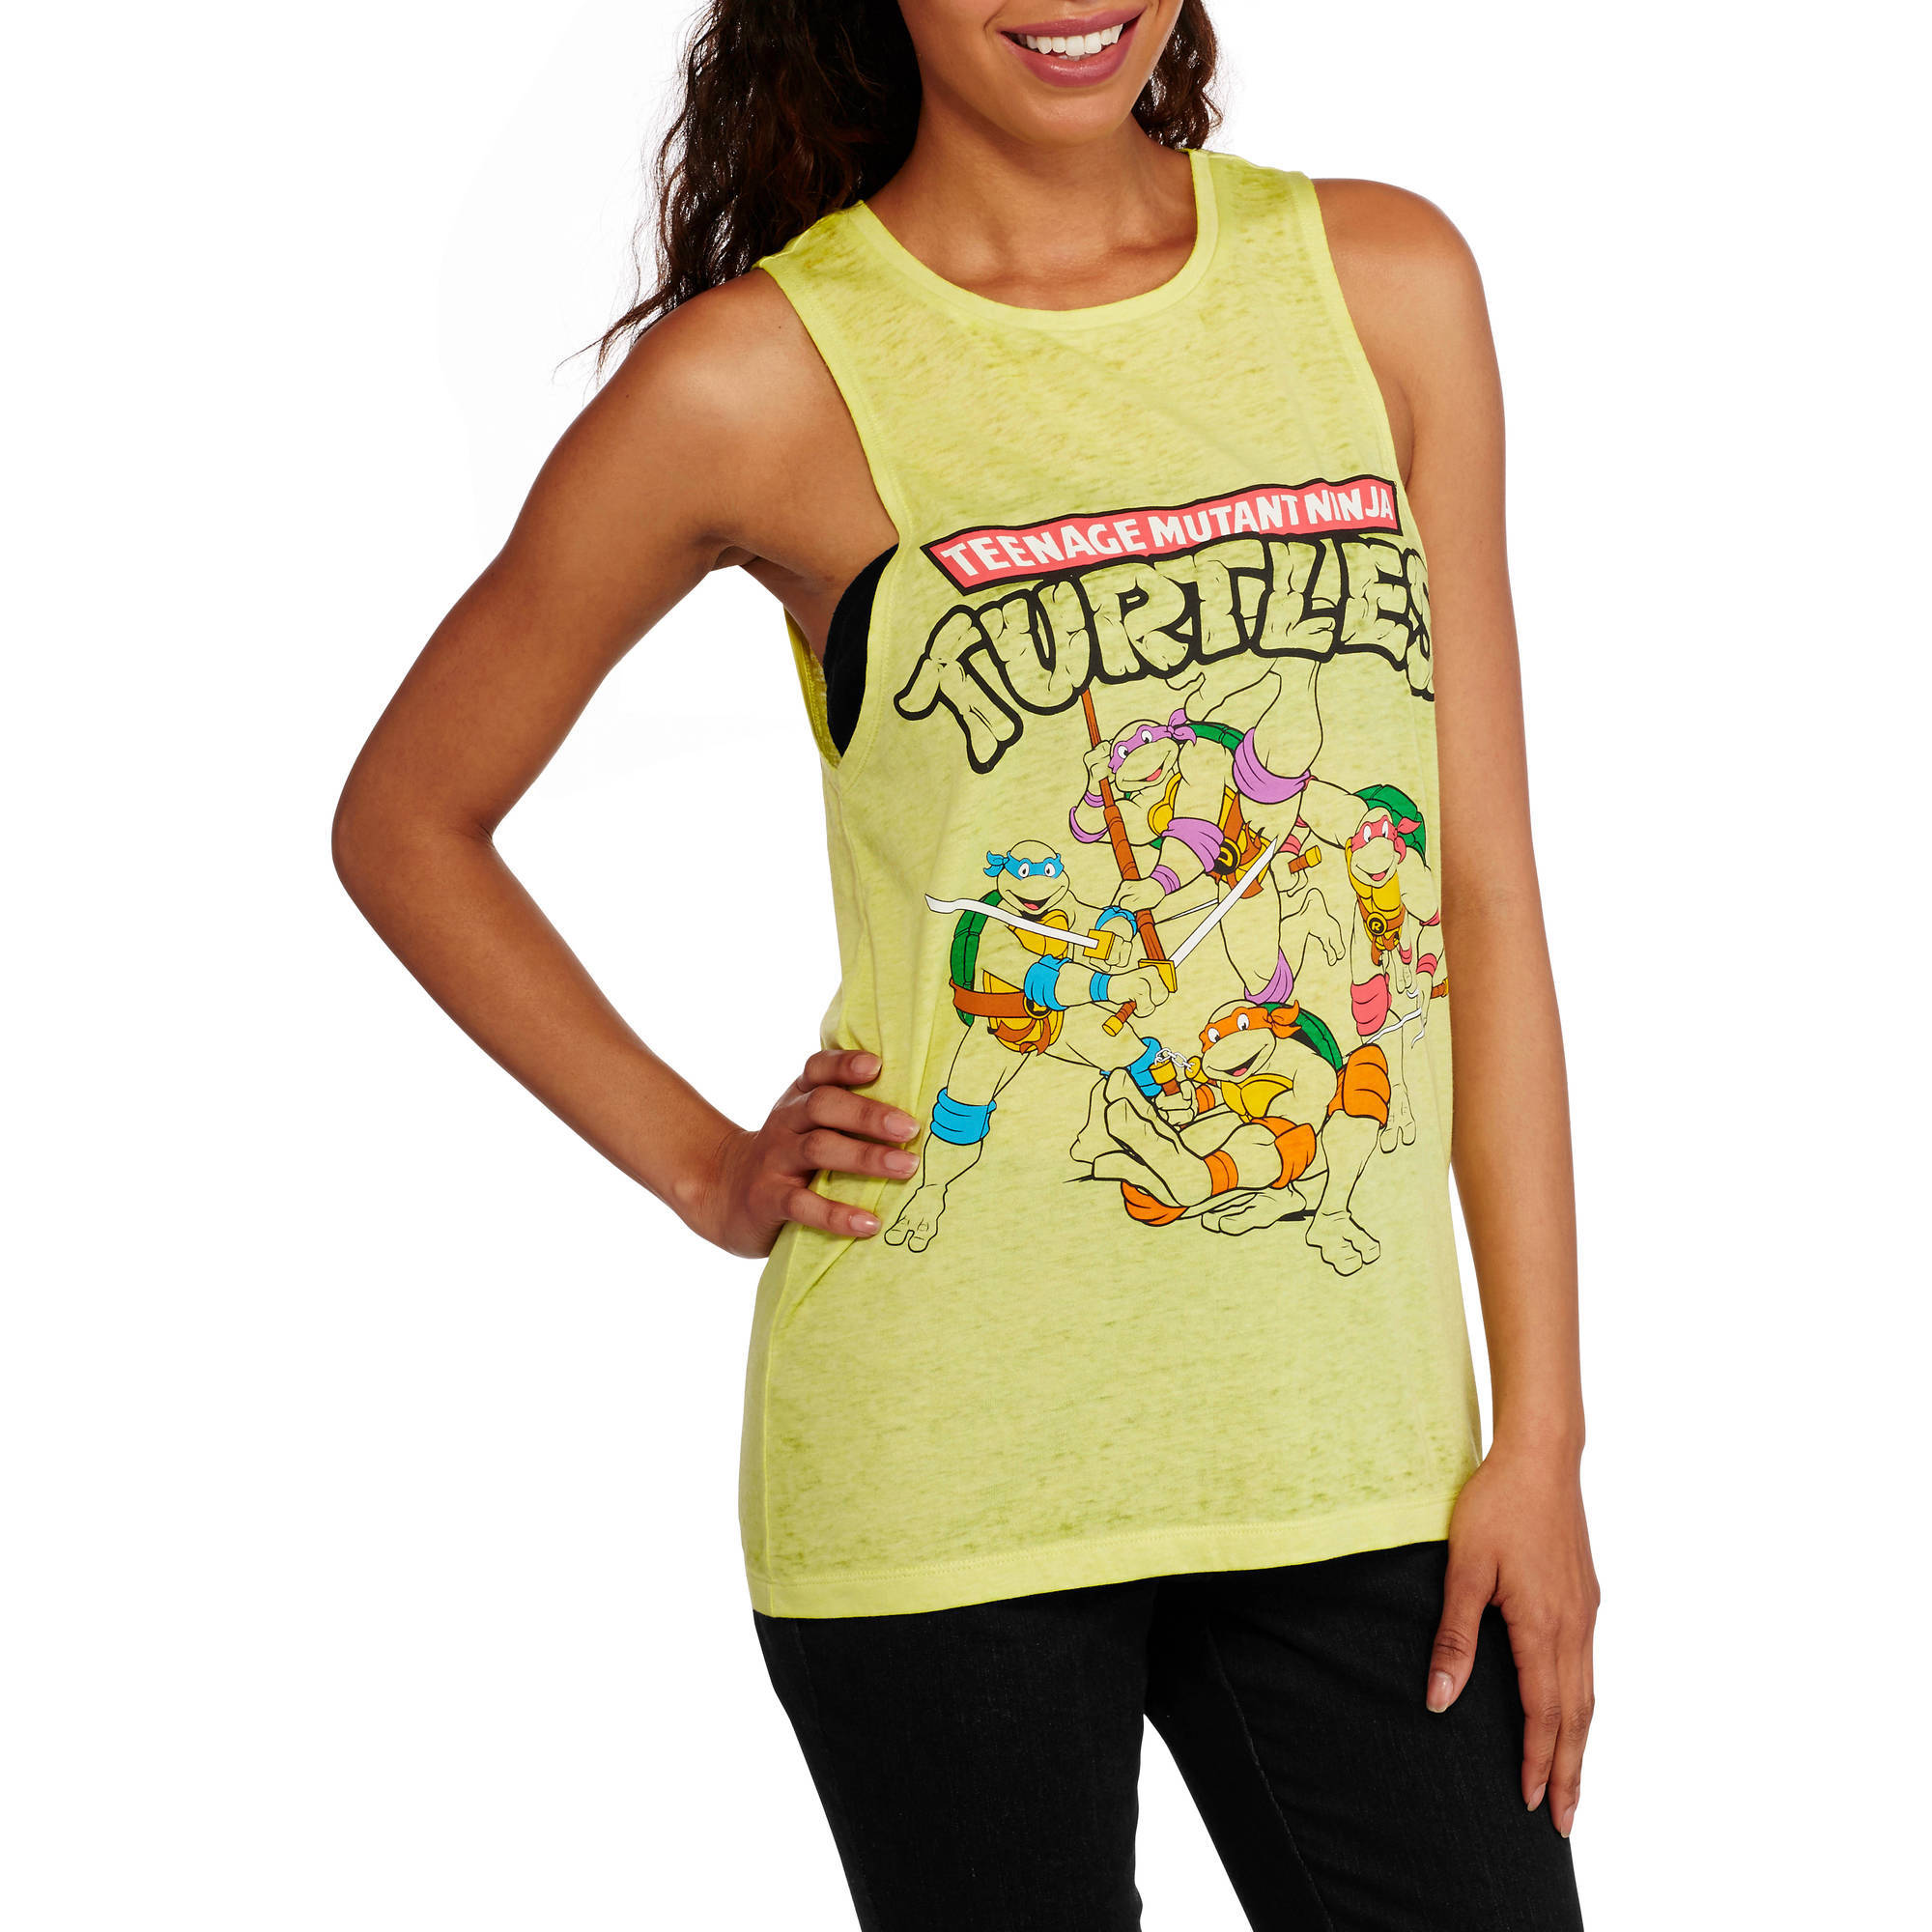 Teenage Mutant Ninja Turtles Juniors Graphic Burnwash Tank